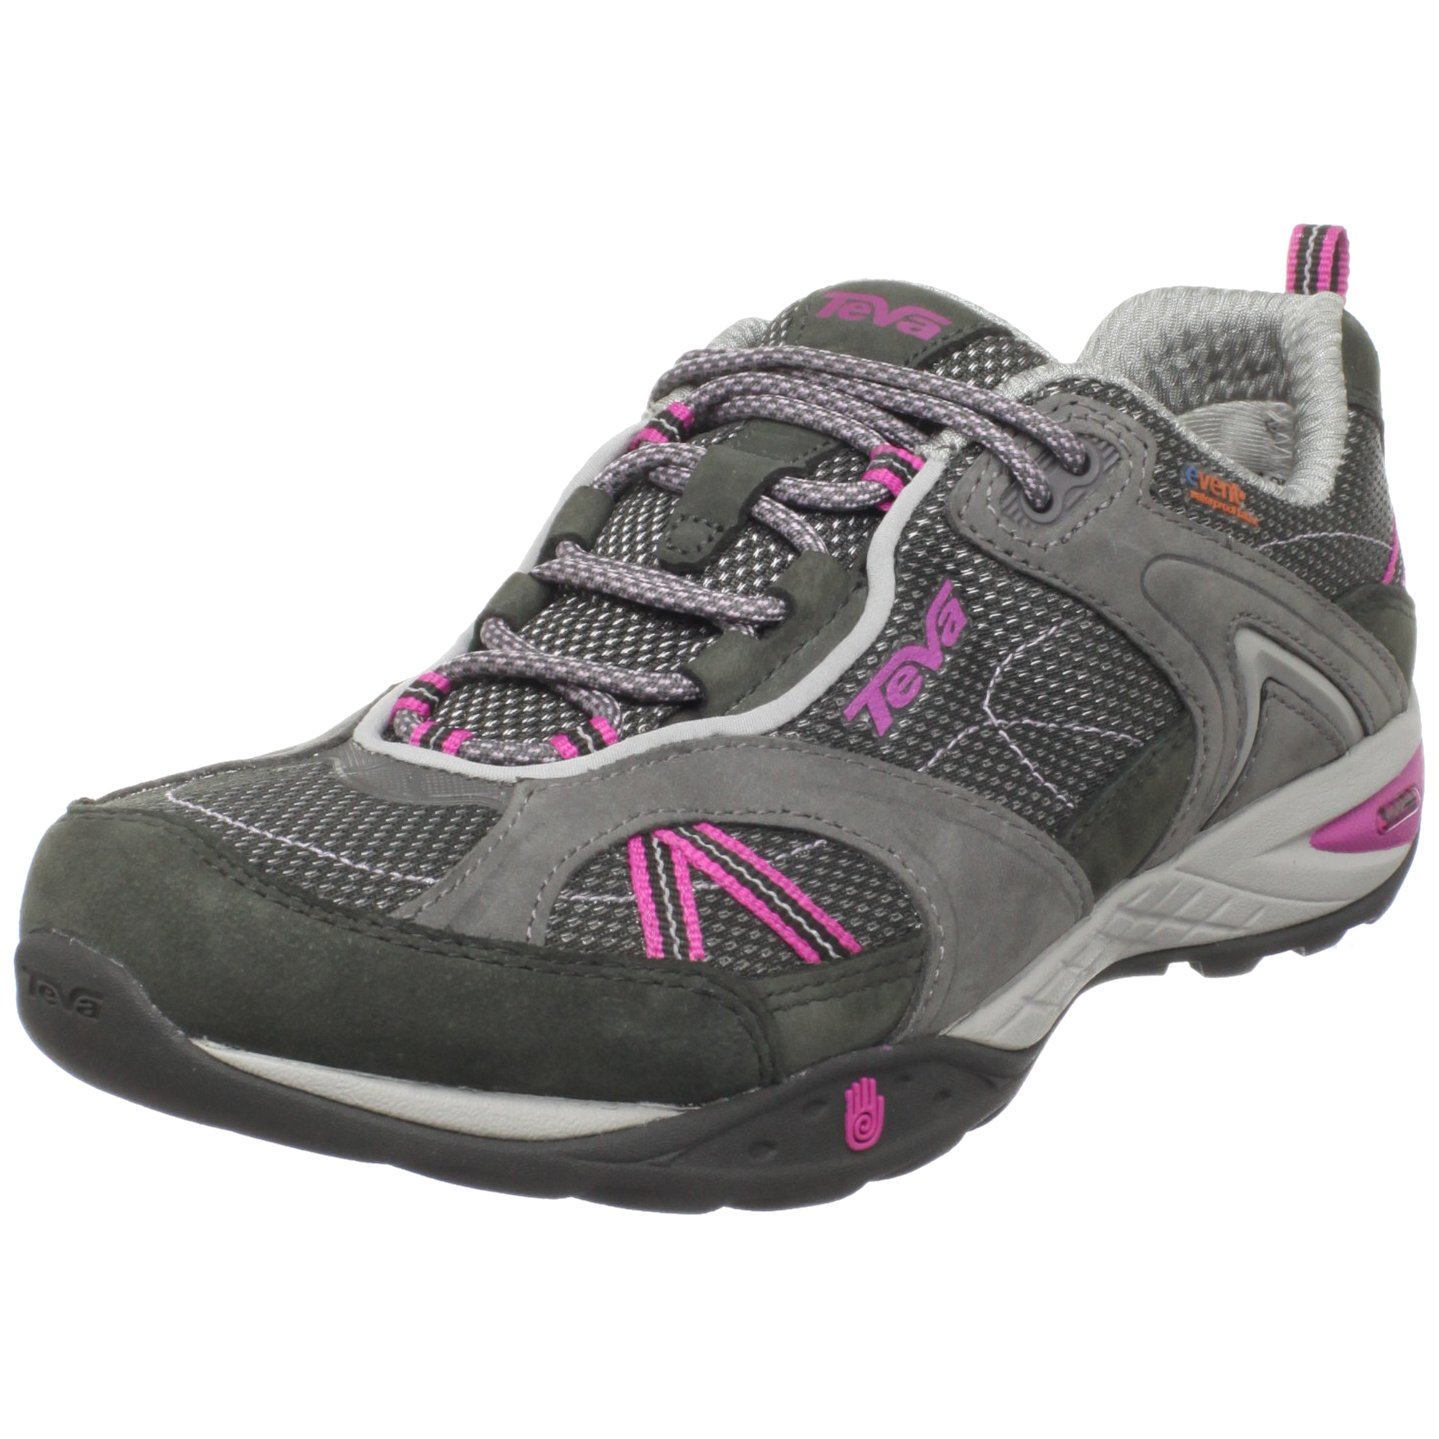 Teva Women's Sky Lake eVent Hiking Shoe,Very Berry,7 M US $39.69